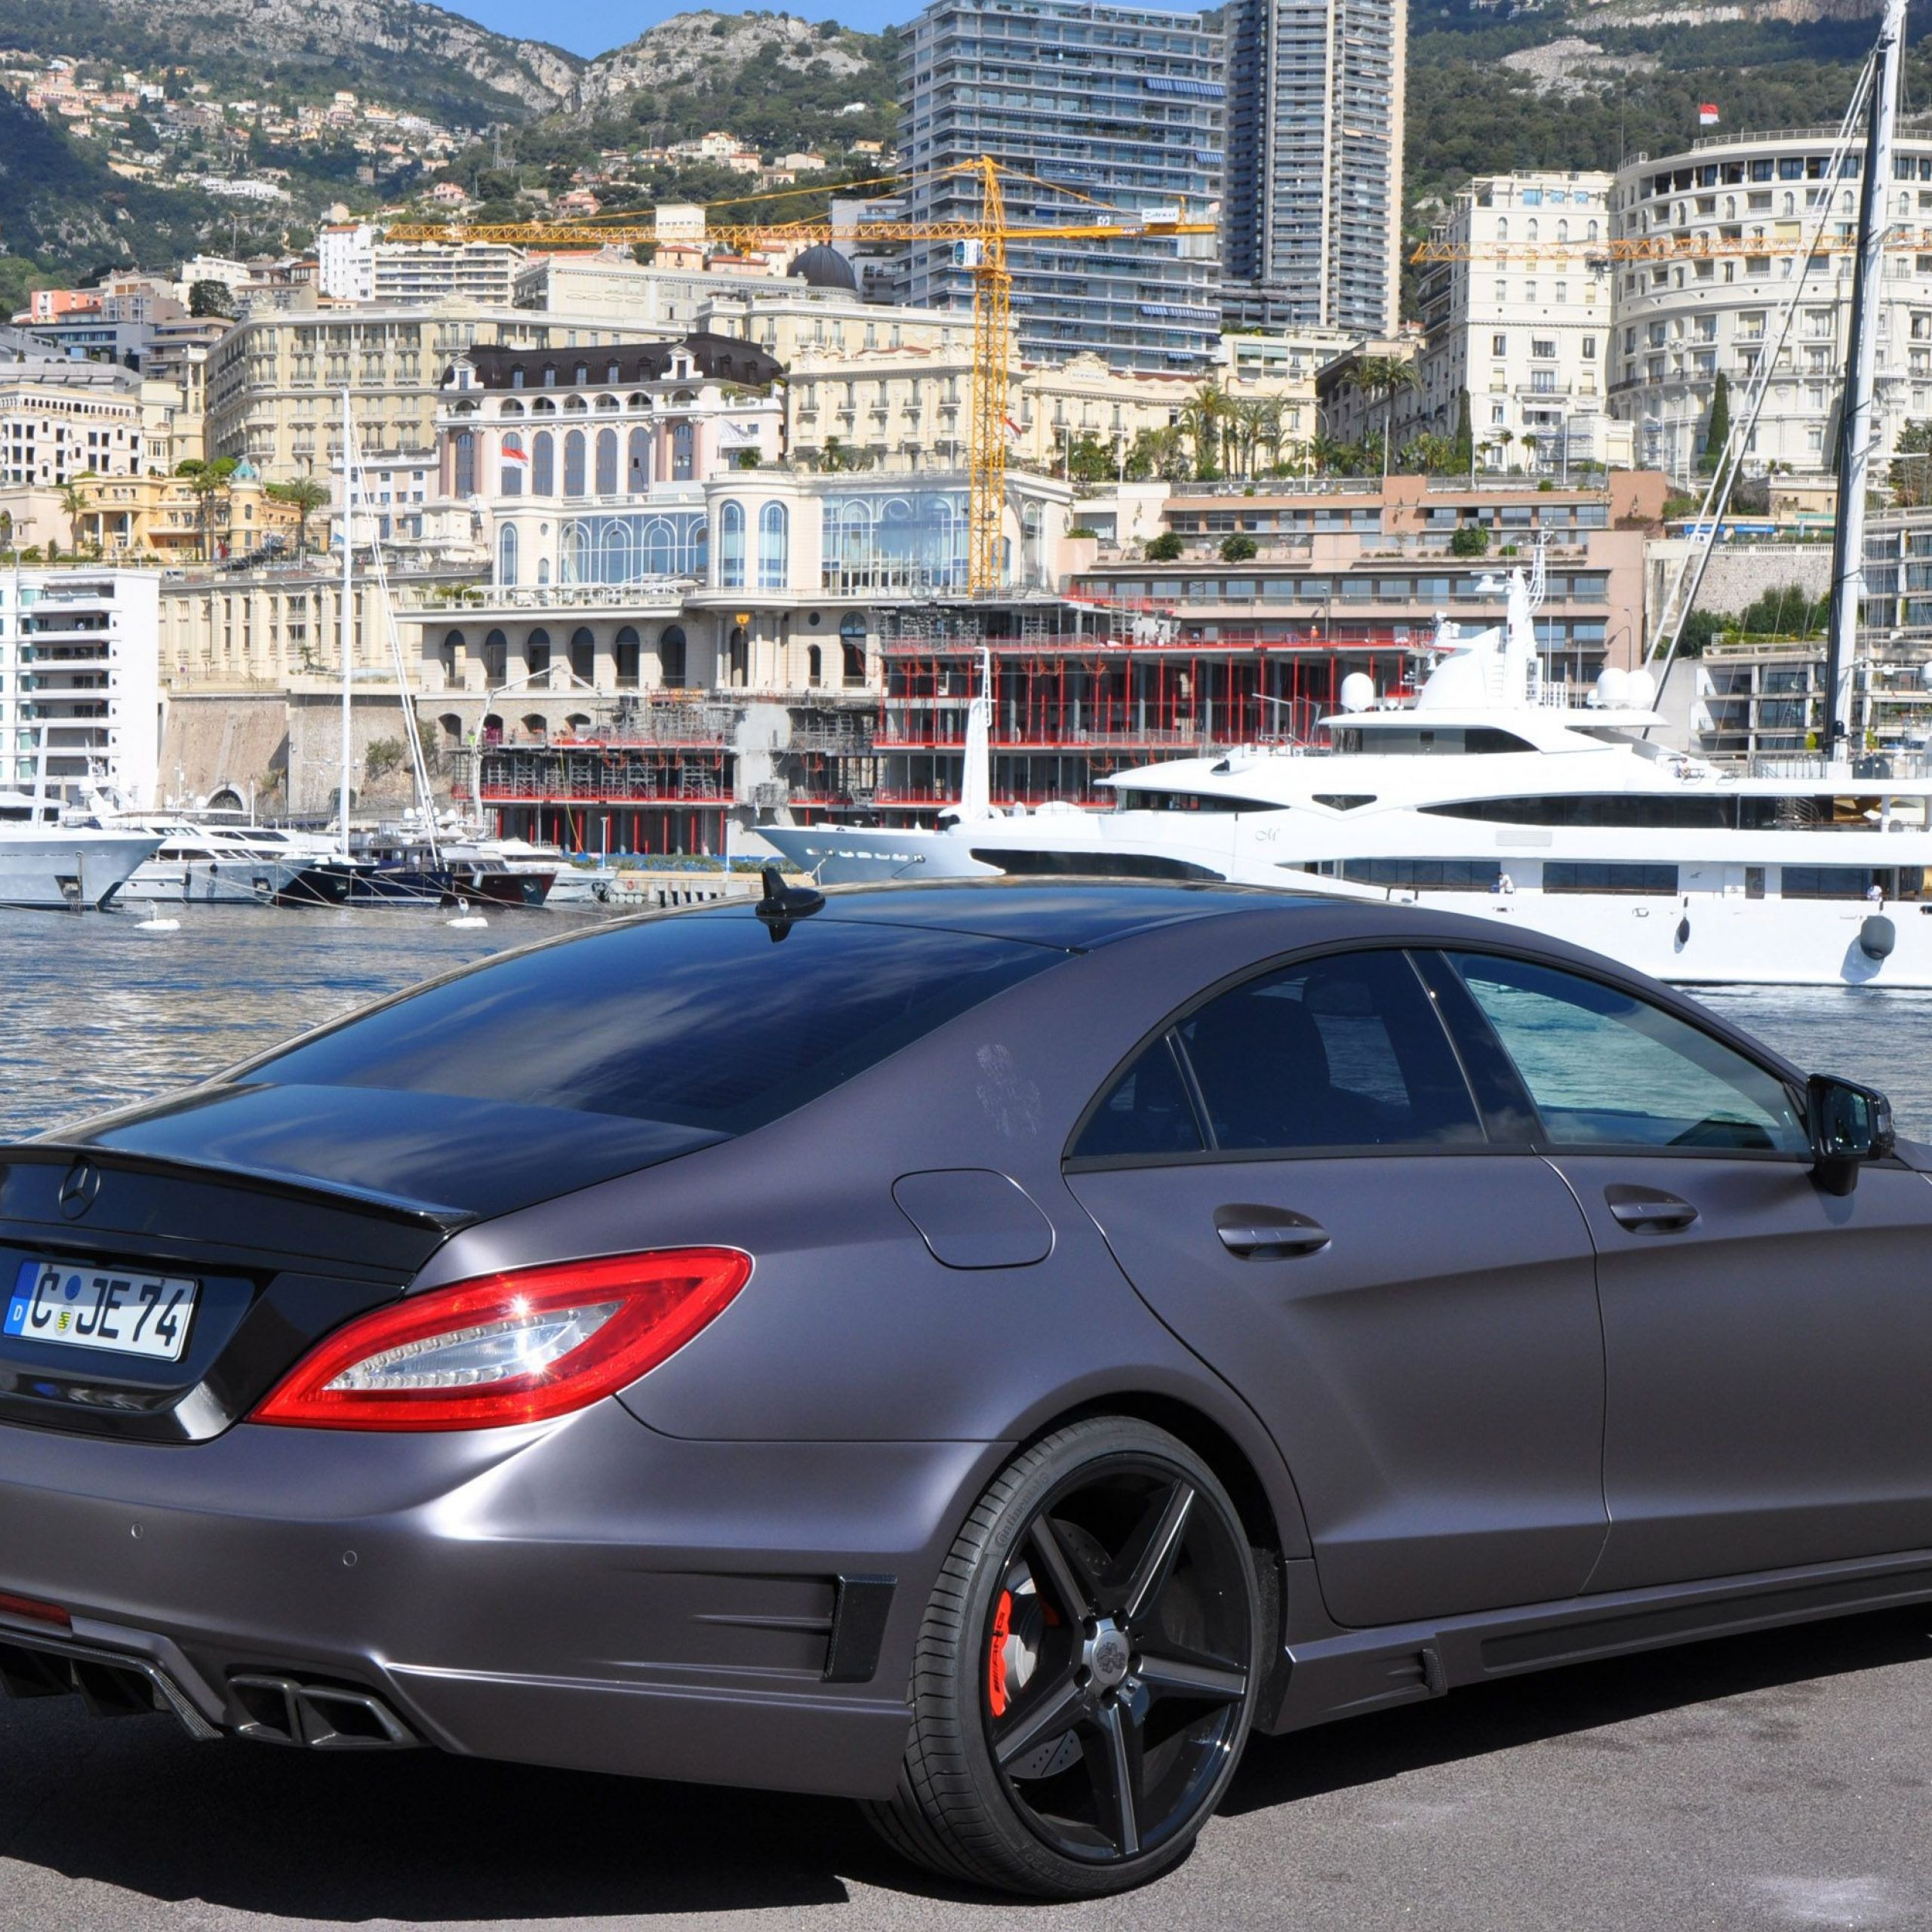 """Cls 2017 Inspirational the German Special Customs Mercedes Benz """"stealth"""" Cl563 Amg"""